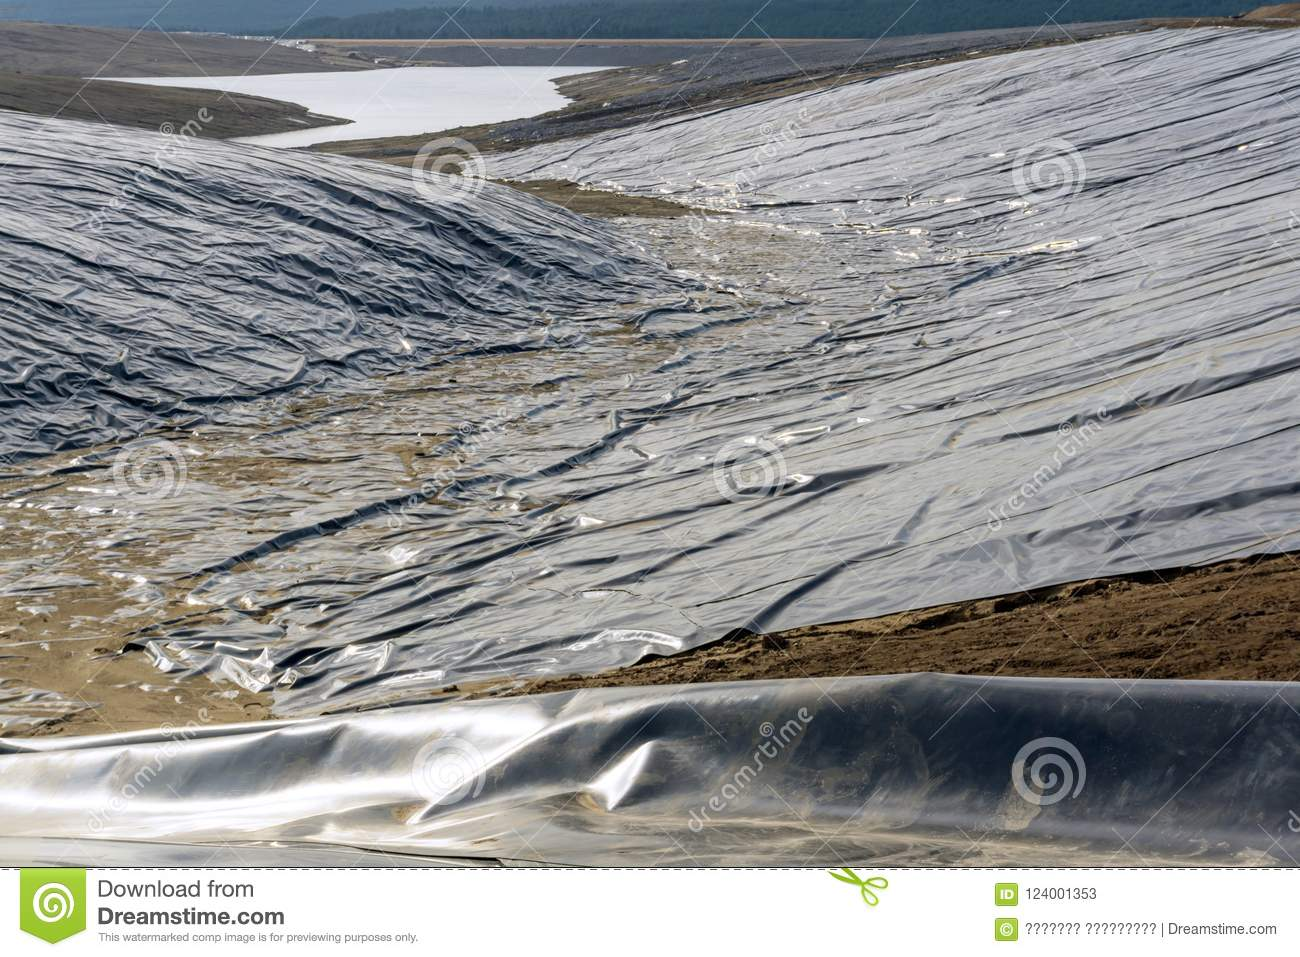 Waterproofing Of A Reservoir For Waste Storage Stock Image - Image